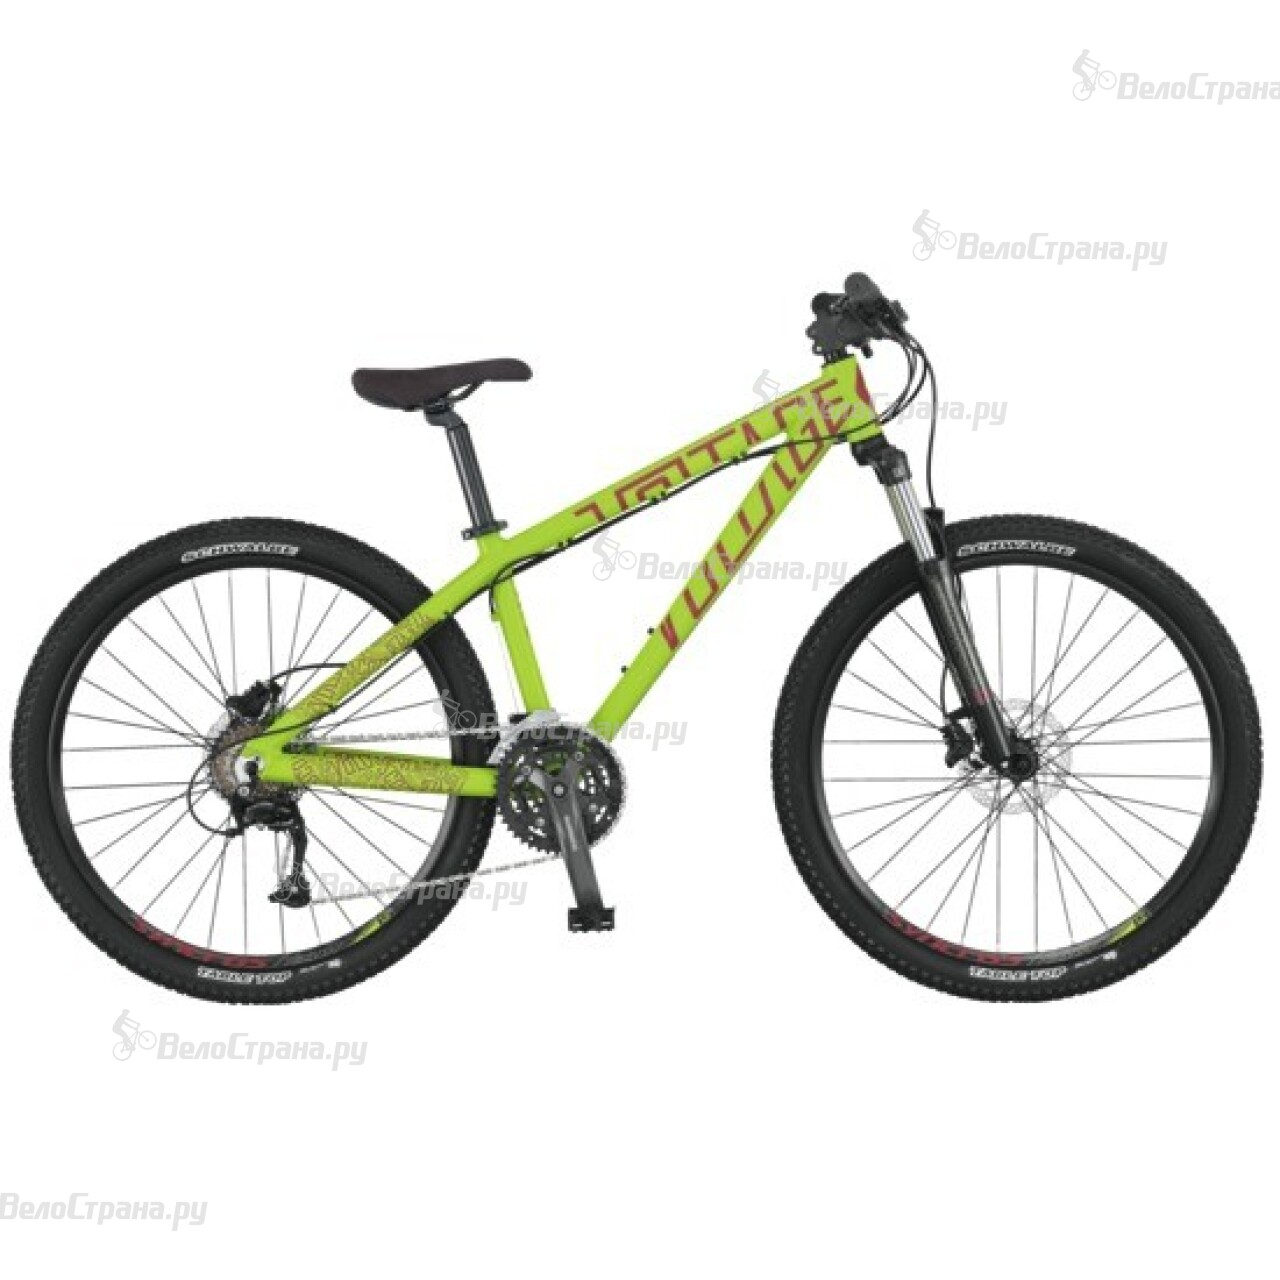 Велосипед Scott Voltage YZ 10 (2014) scott joplin ноты в спб